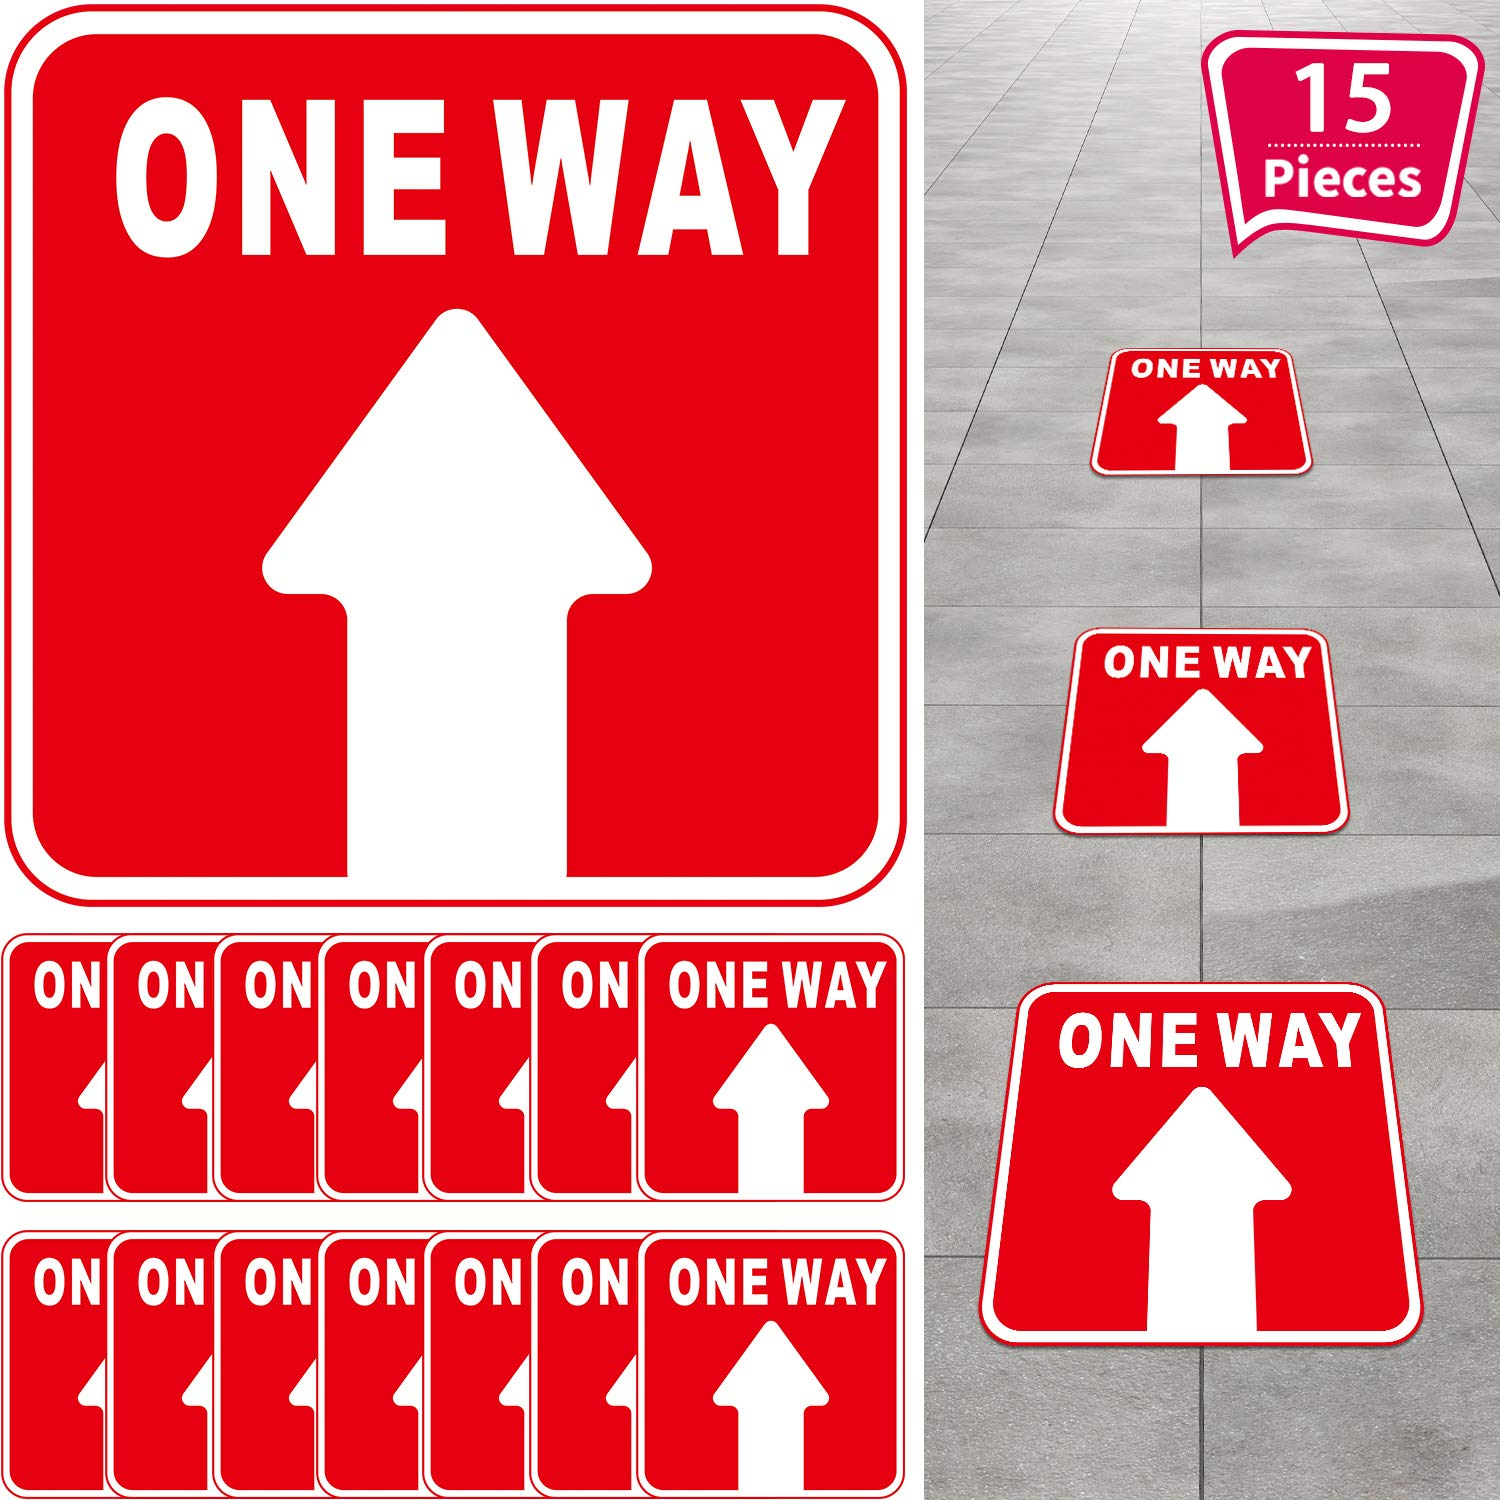 15 Pieces One Way Sticker Sign, Social Distance Directional Floor Decal Sticker Non-Slip Re-Adjustable Arrow Floor Sticker, Safety Floor Marker for Mall Store Office Grocery (Red, White)